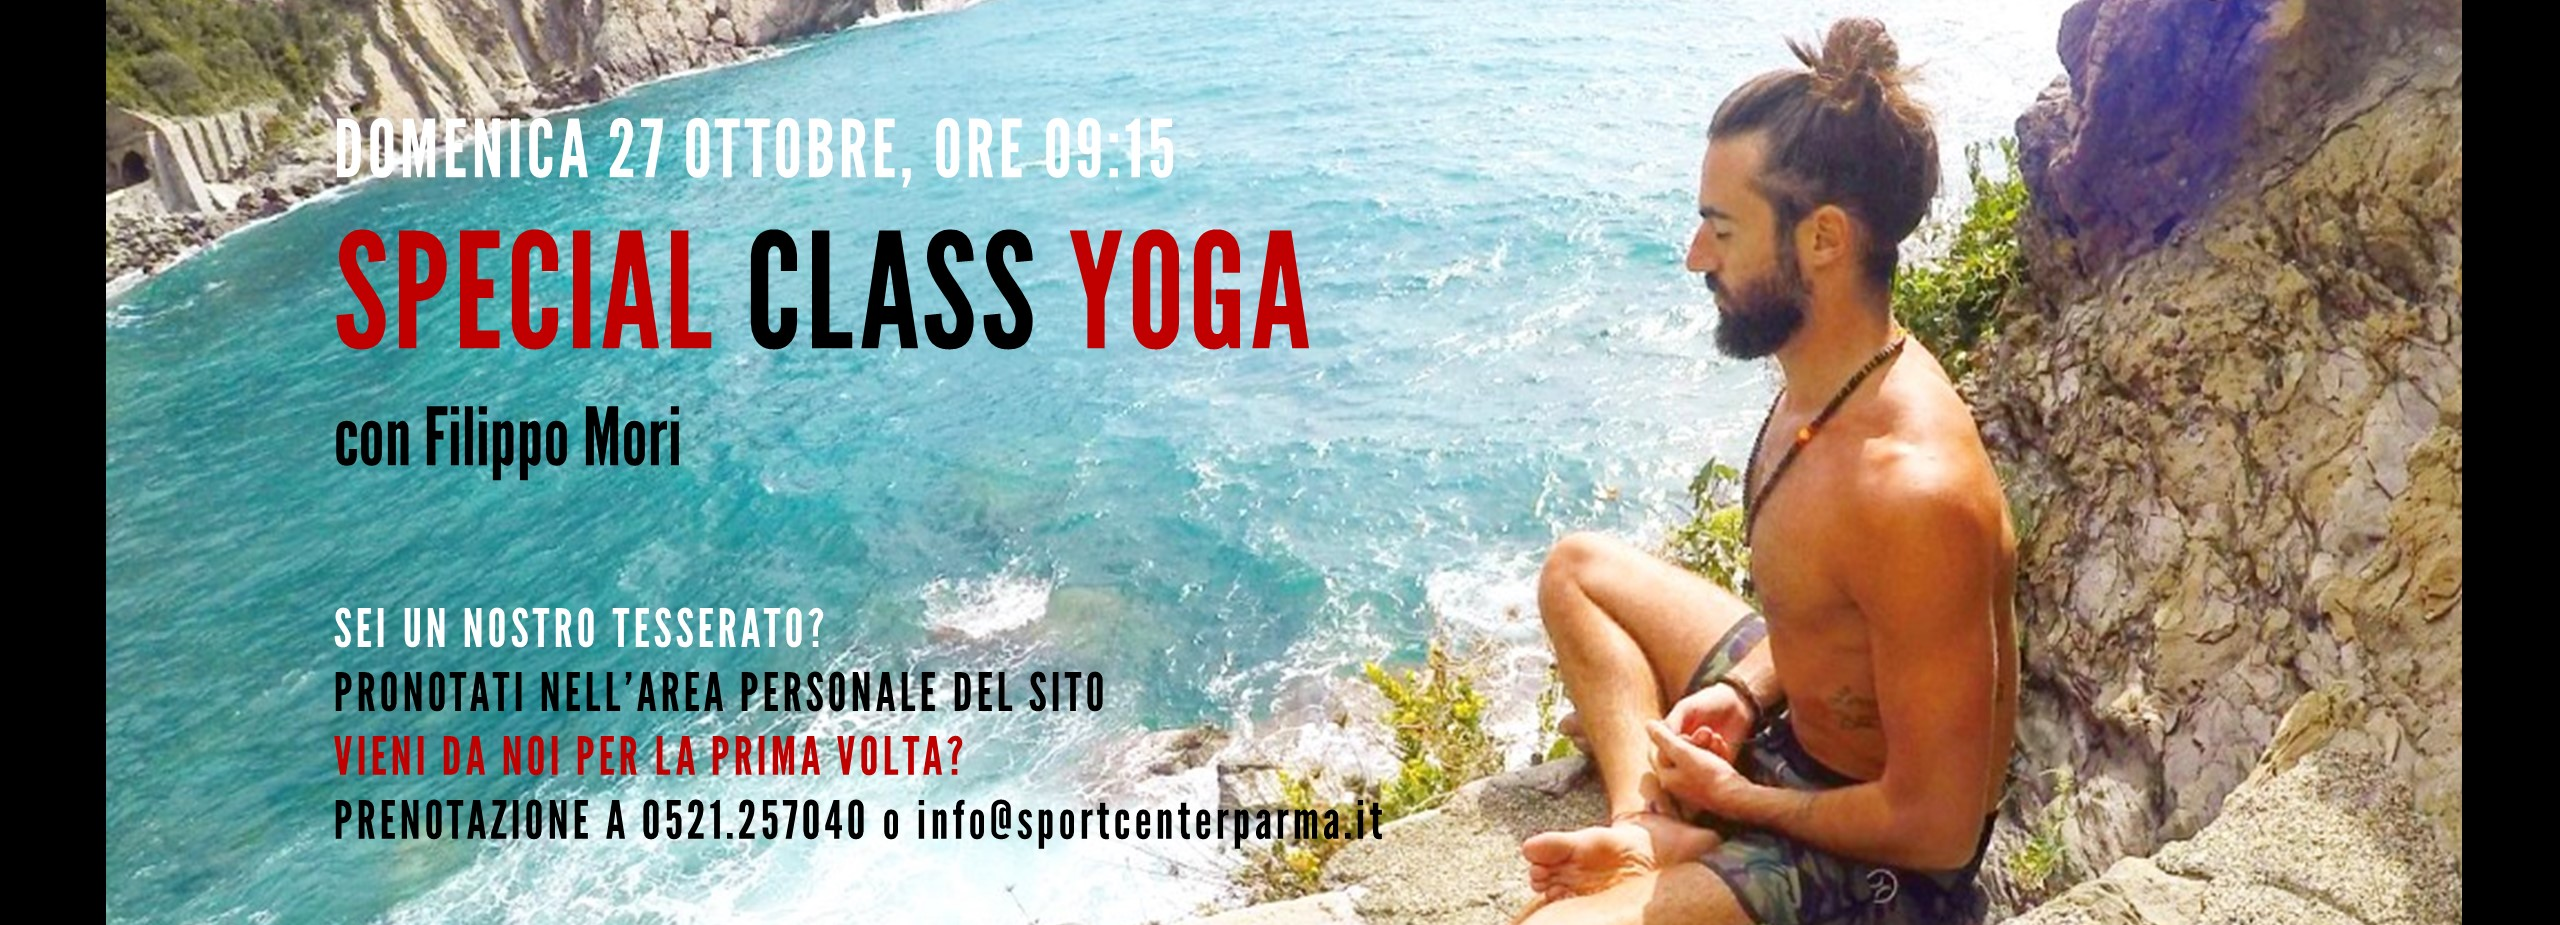 Slide-sito-special-class-yoga